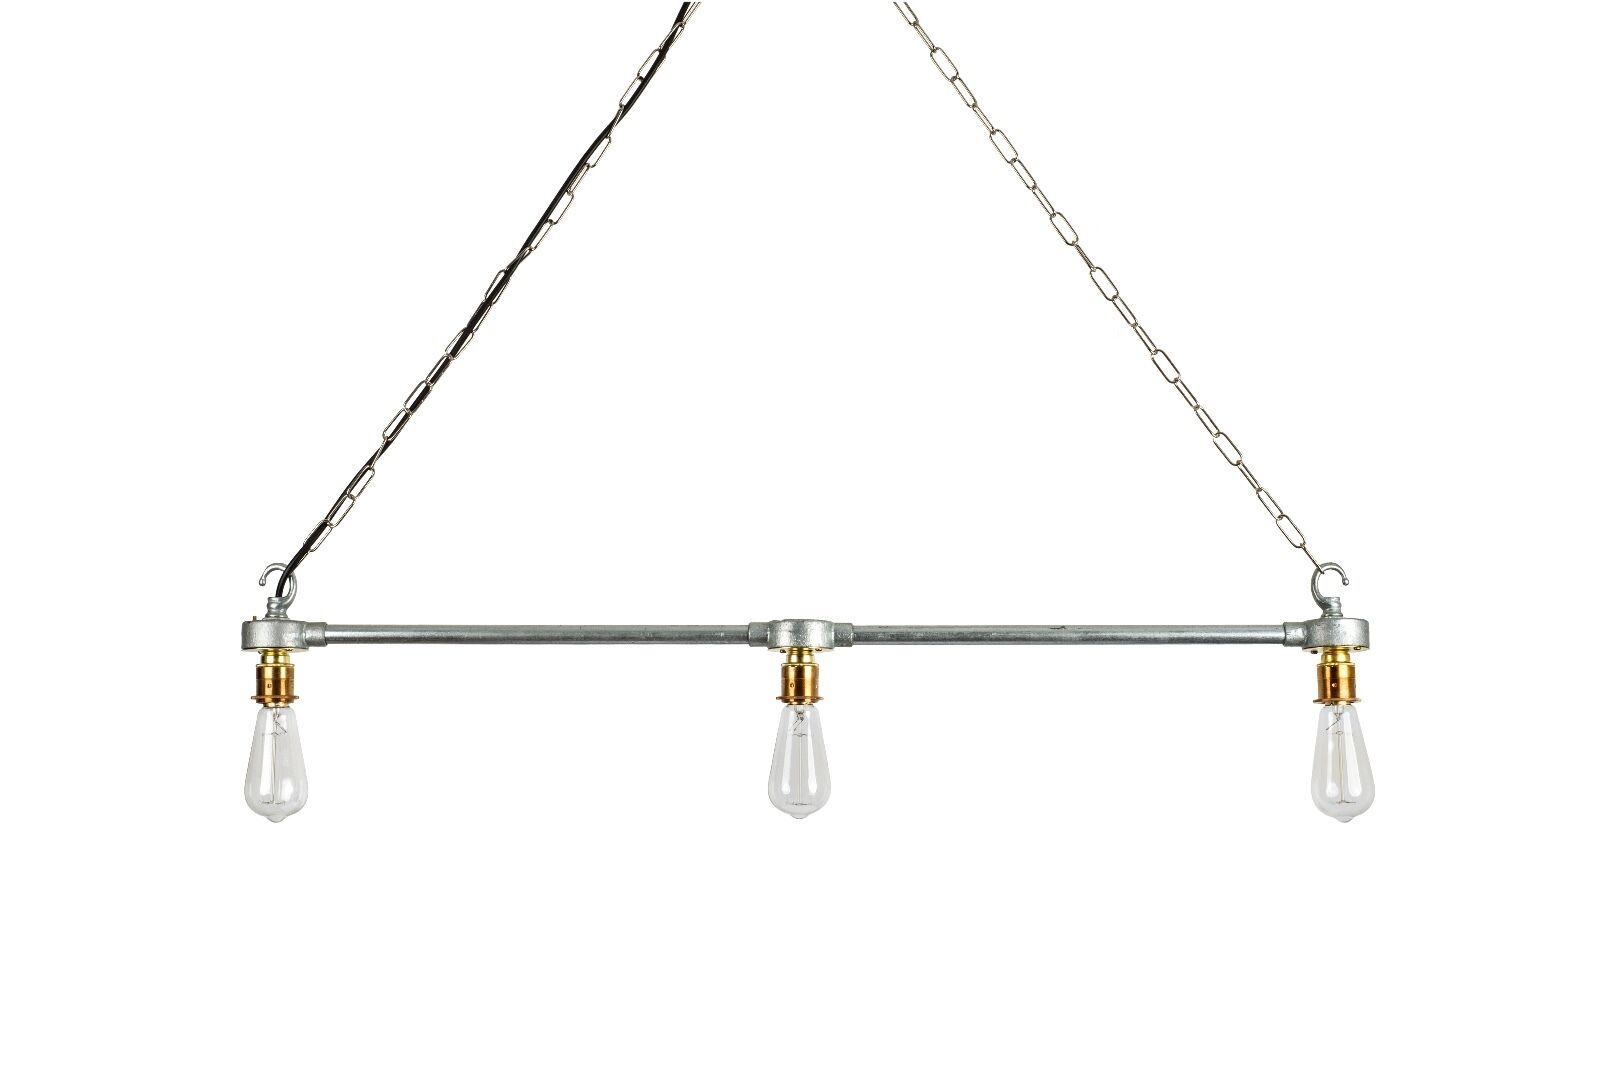 Steel Industrial Rustic Ceiling Hanging Pipe Light E27 Bar Kitchen Light